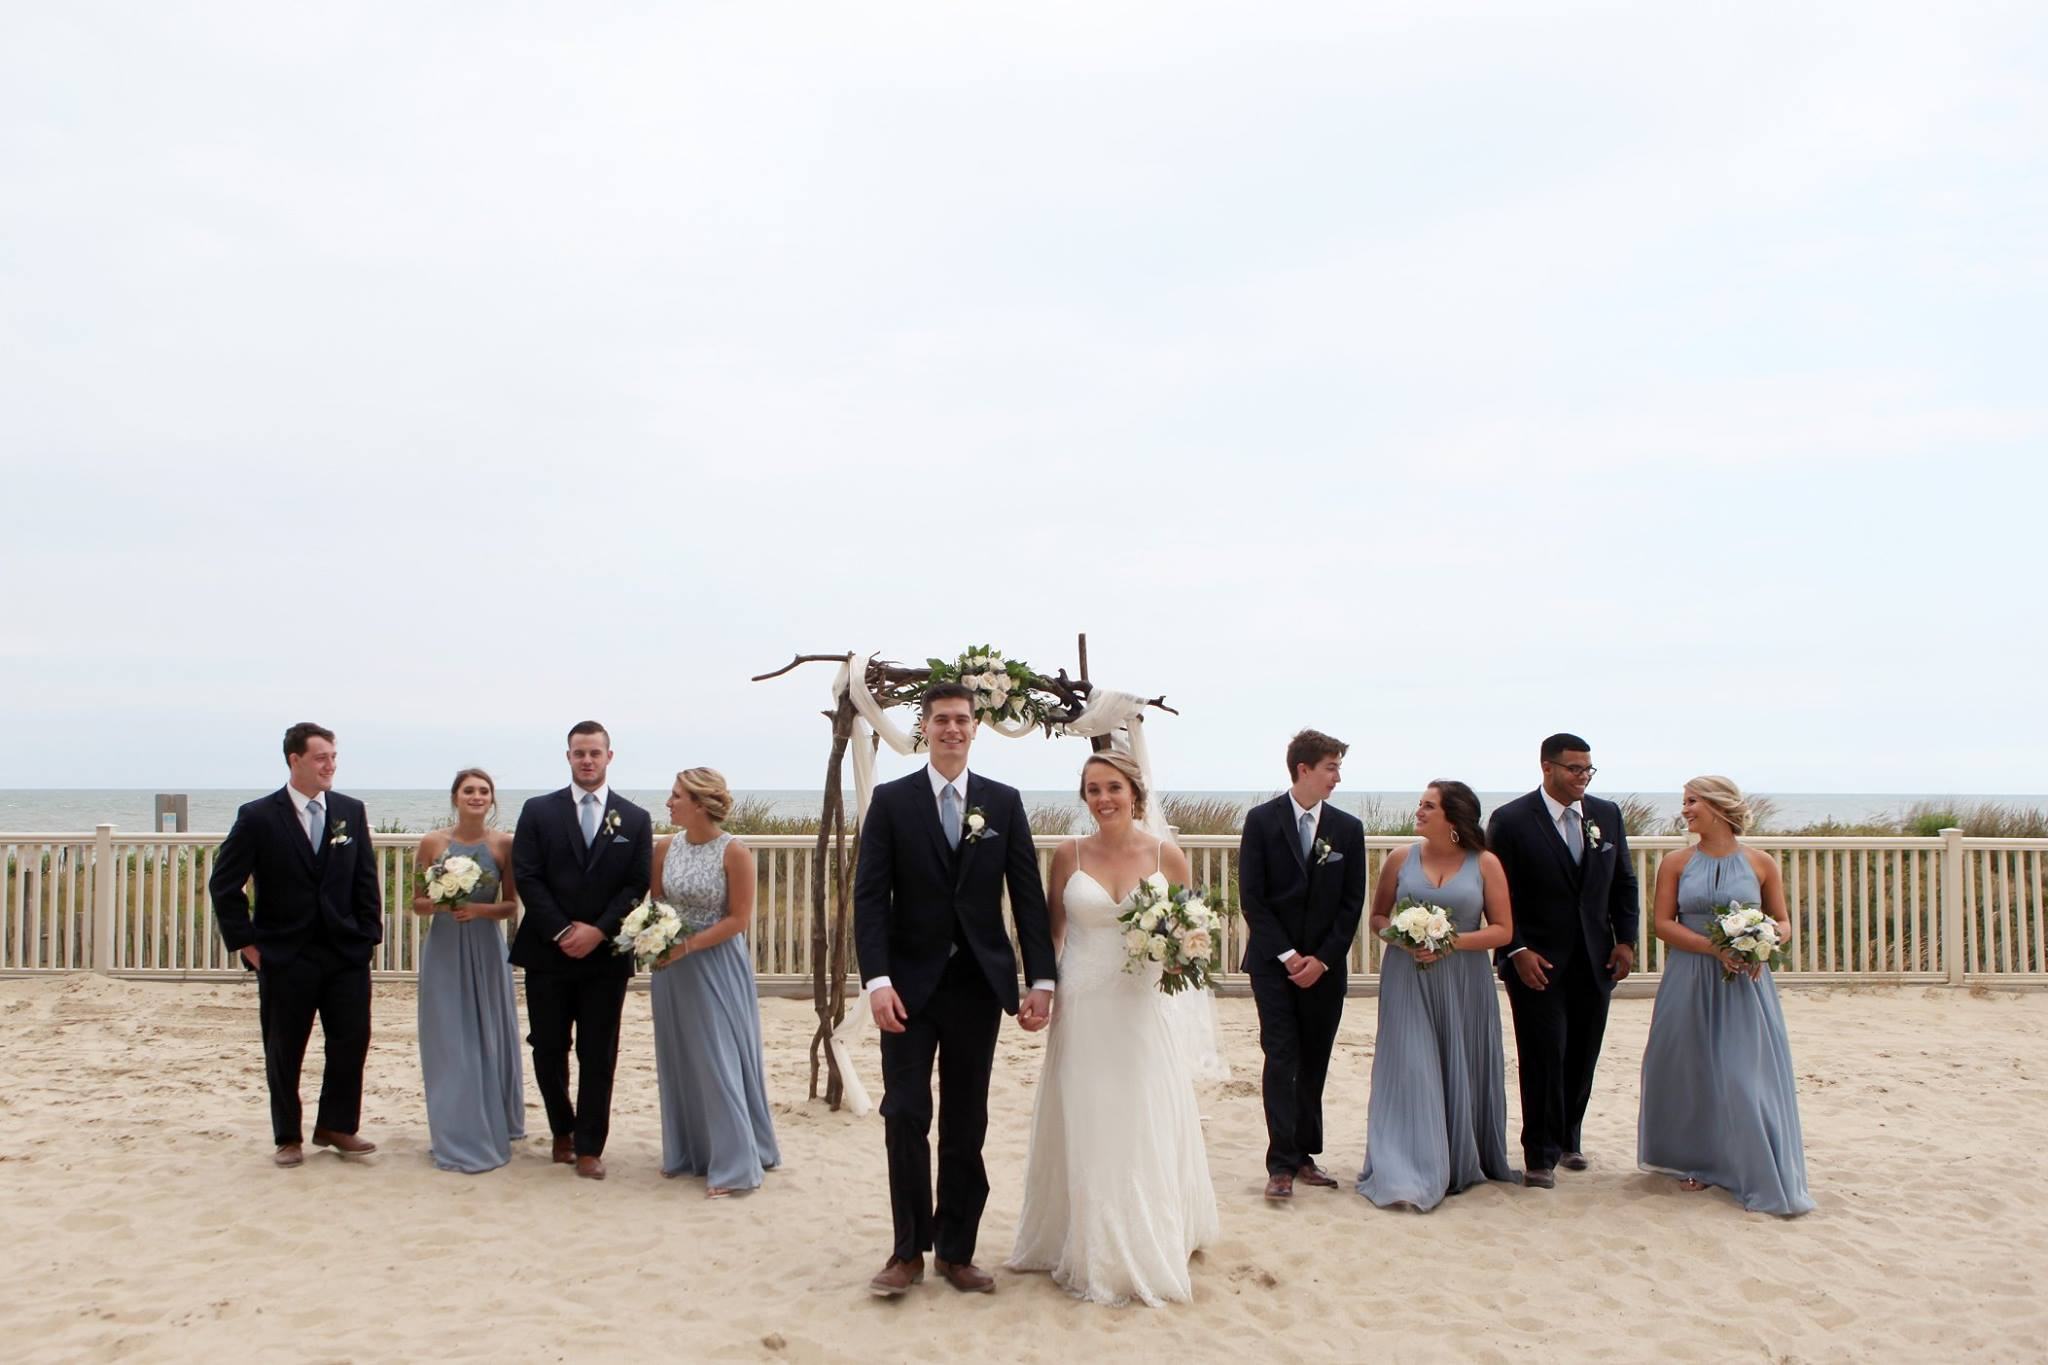 gillette portrait arts photography // little miss lovely floral design // golden sands ocean city md wedding